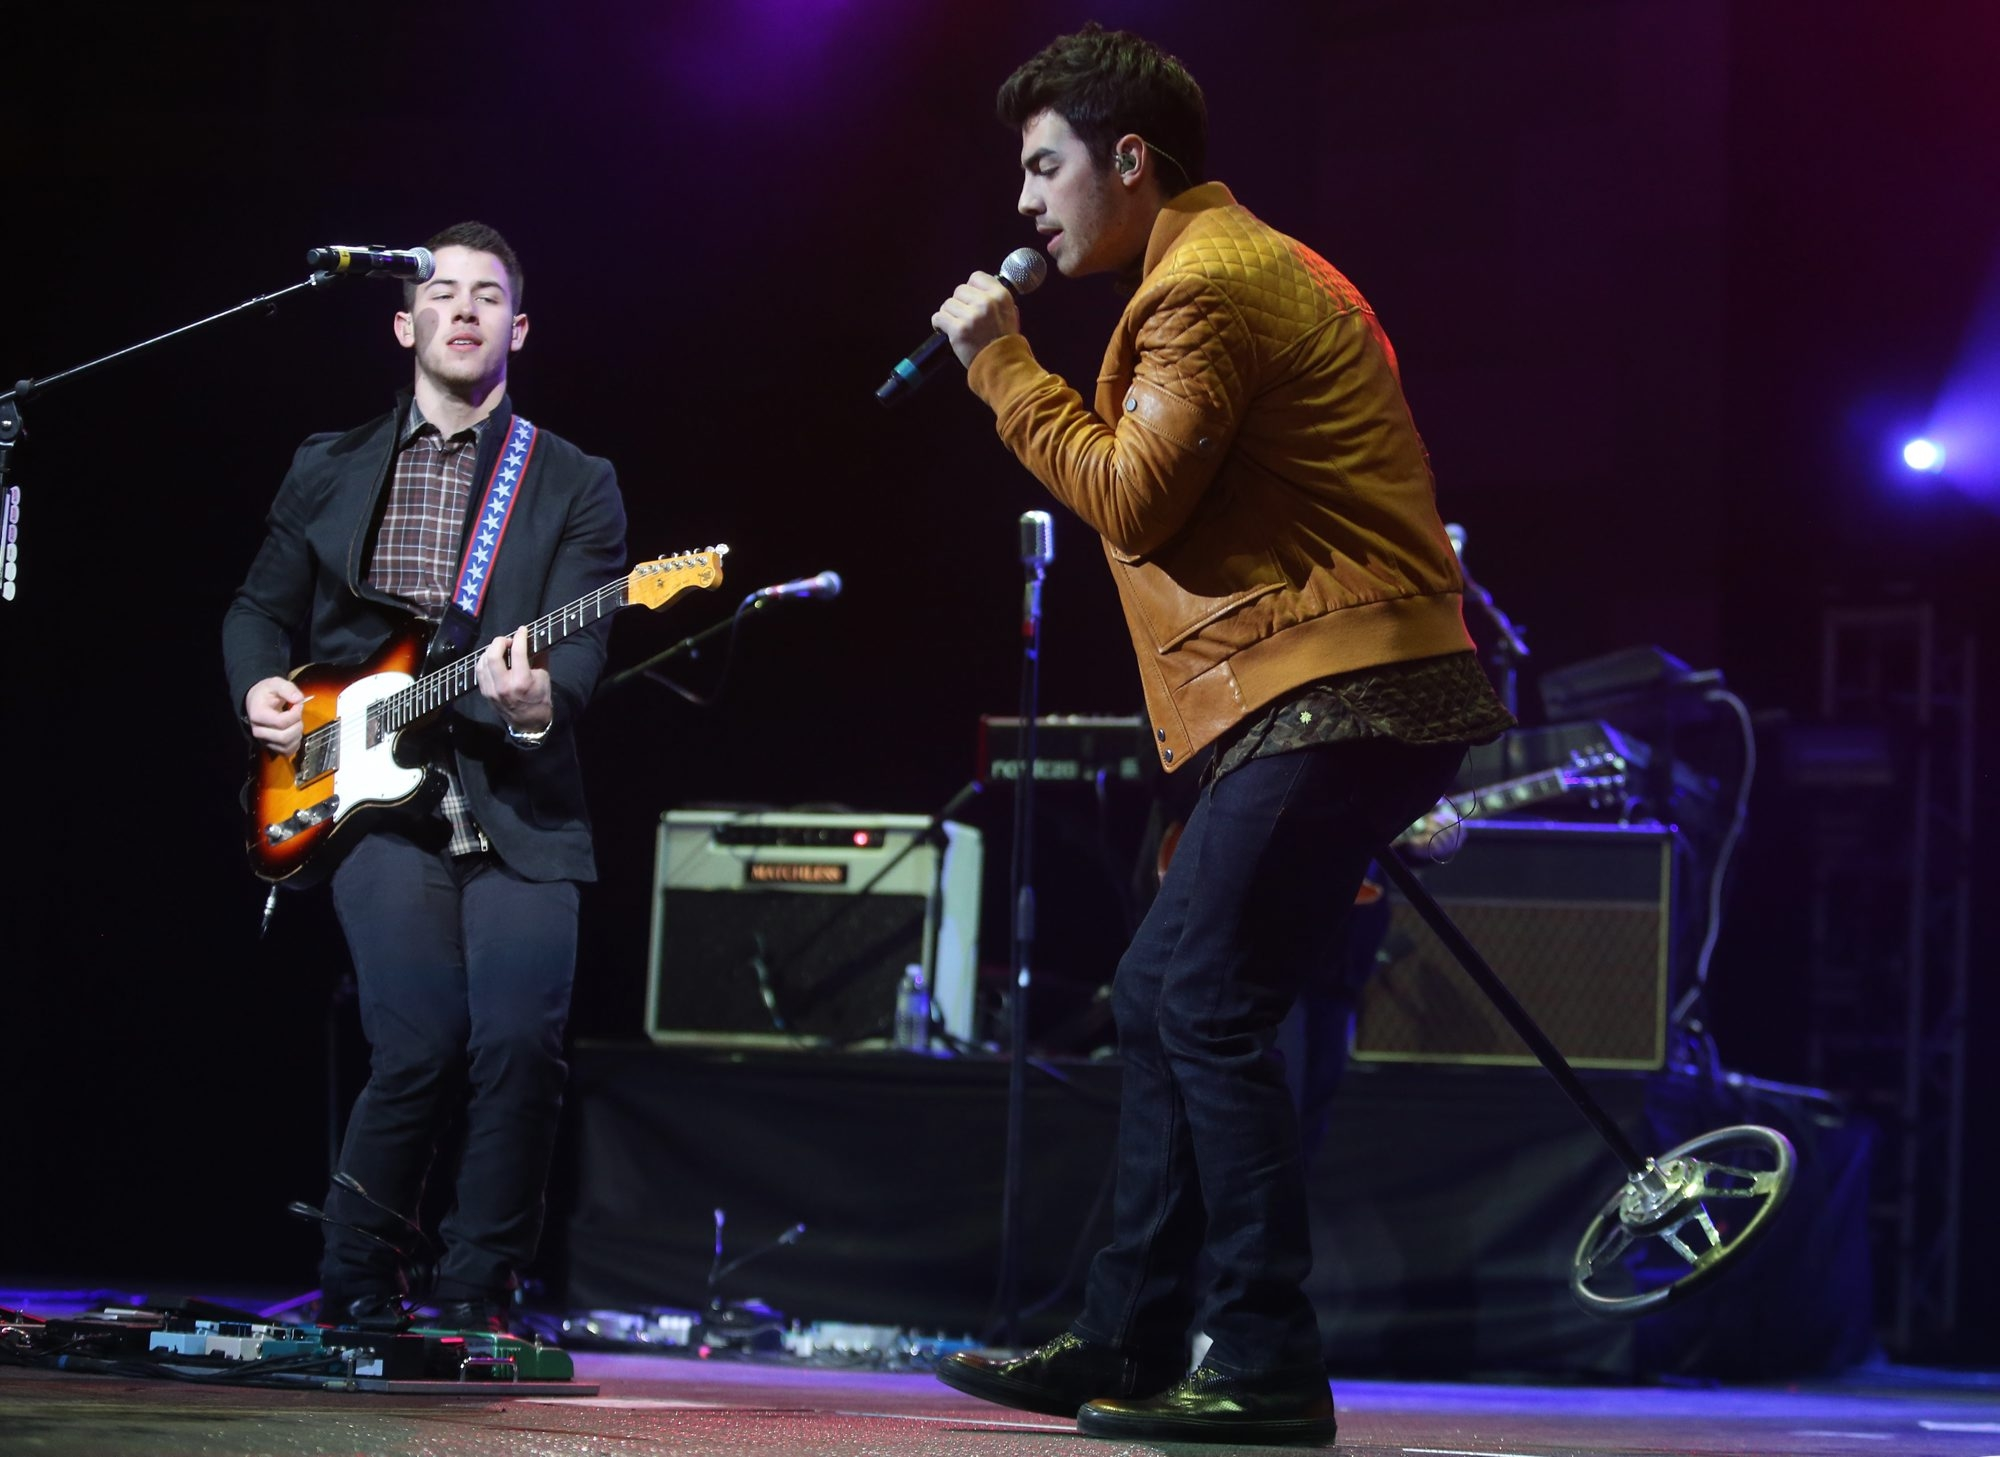 The Jonas Brothers, Nick and Joe, perform onstage at the First Niagara Center in downtown Buffalo, during the annual Kissmas Bash, Thursday, December 12, 2013. (Charles Lewis/Buffalo News)